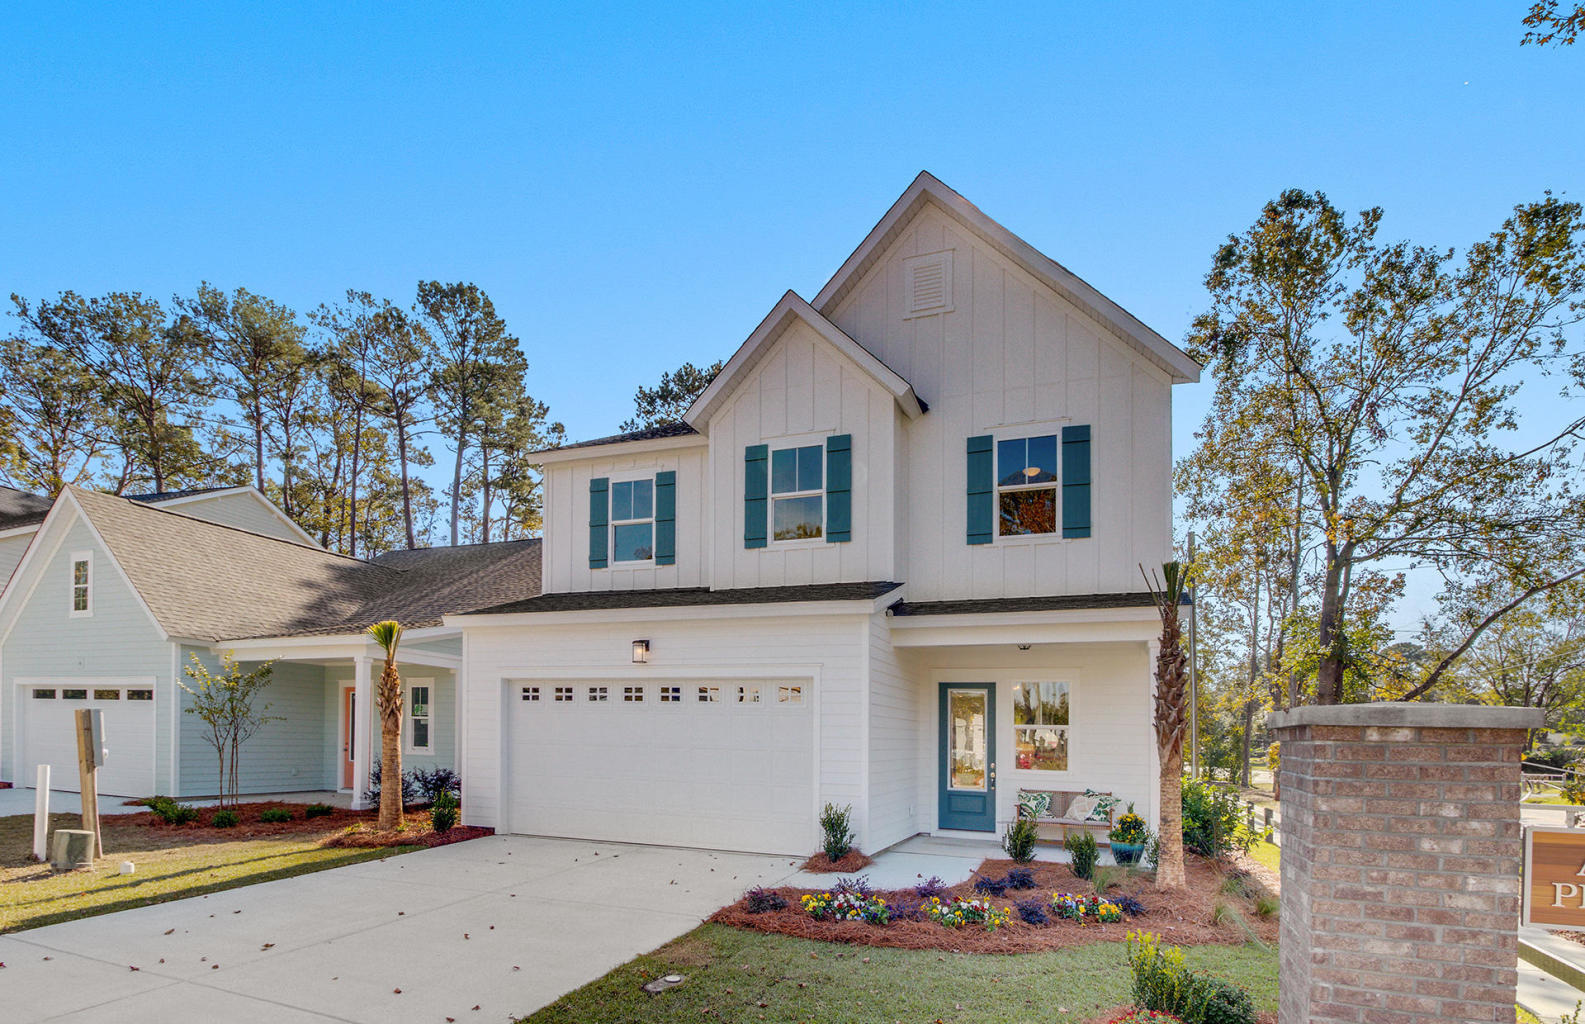 3035 Evening Tide Drive Hanahan, SC 29410